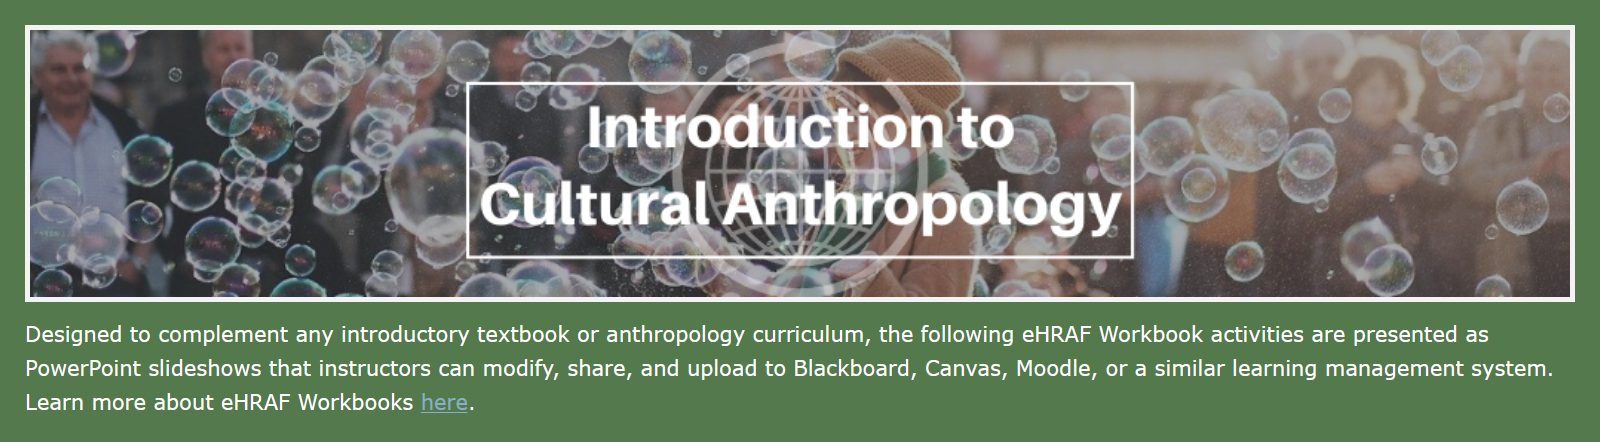 Intro to Cultural Anthropology Workbook